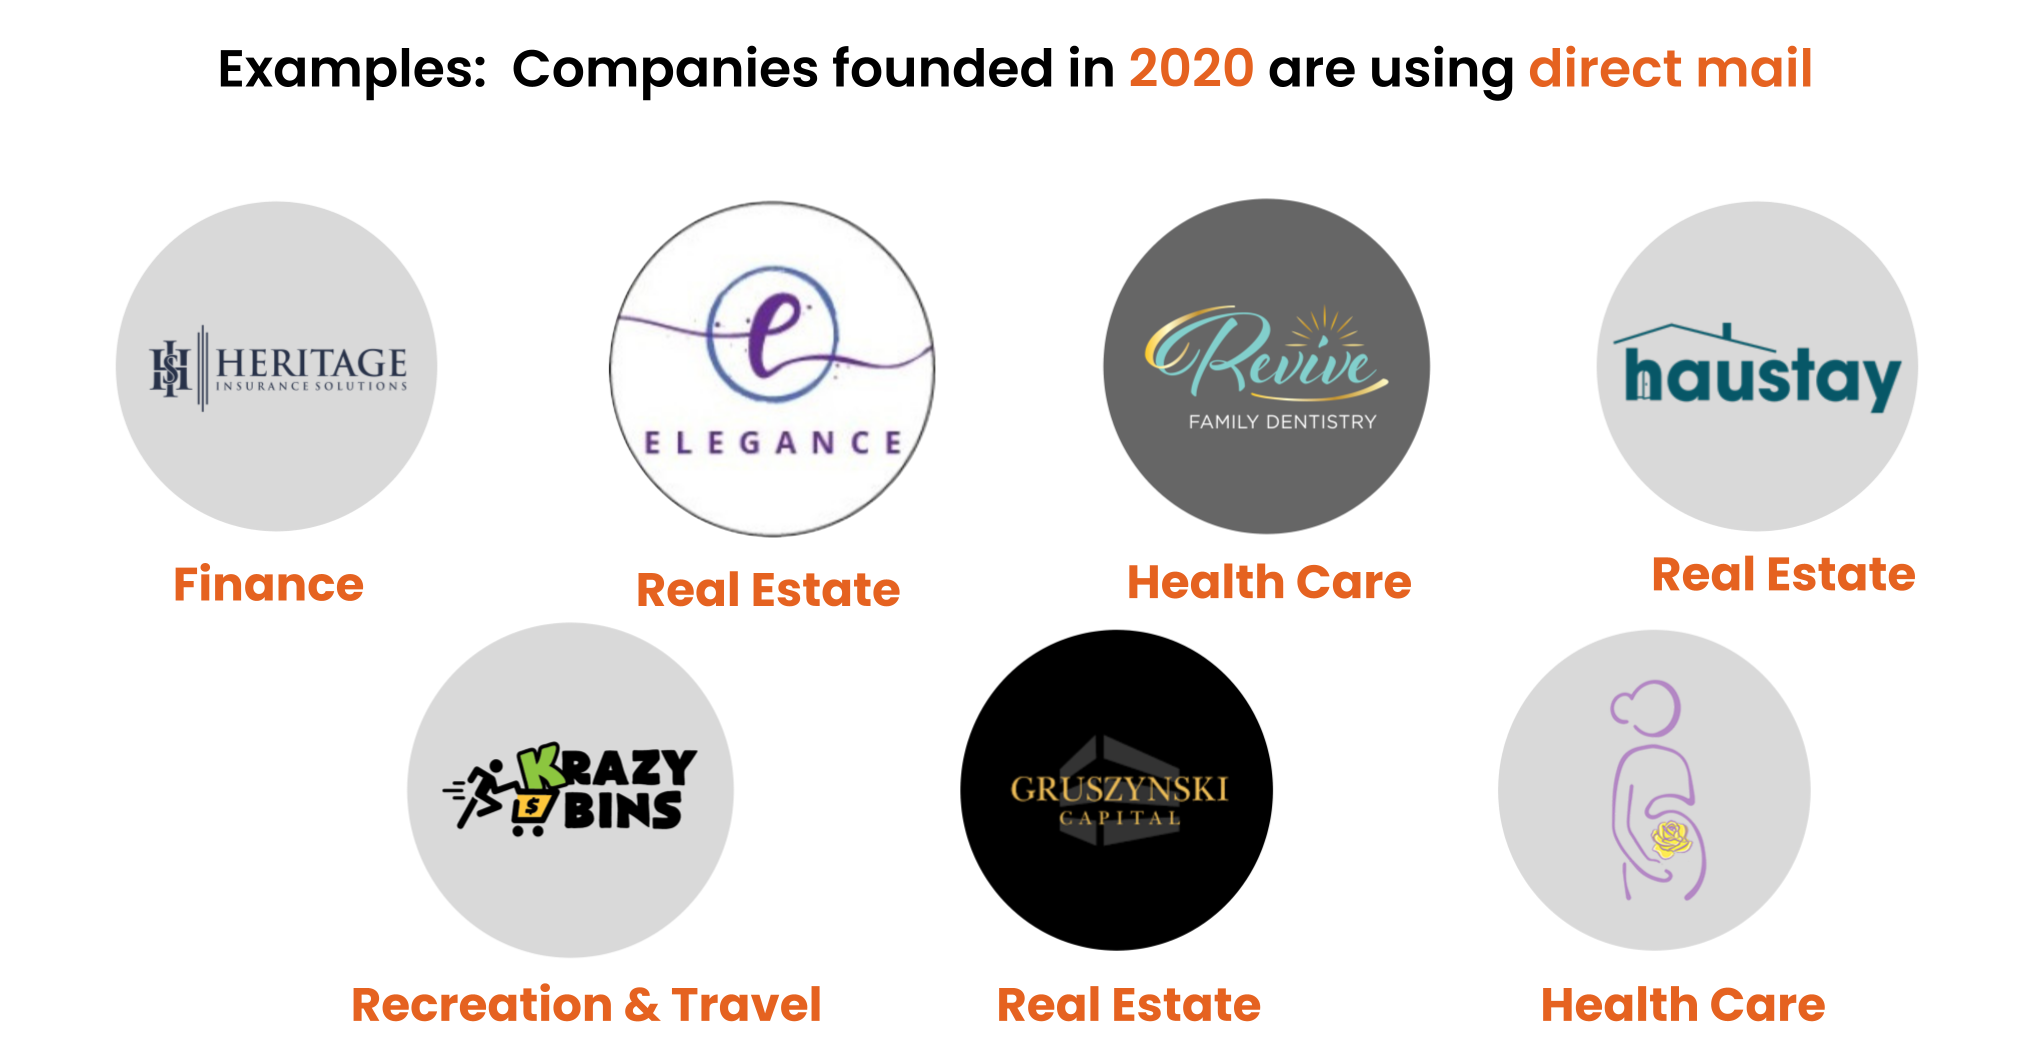 companies founded in 2020 using direct mail